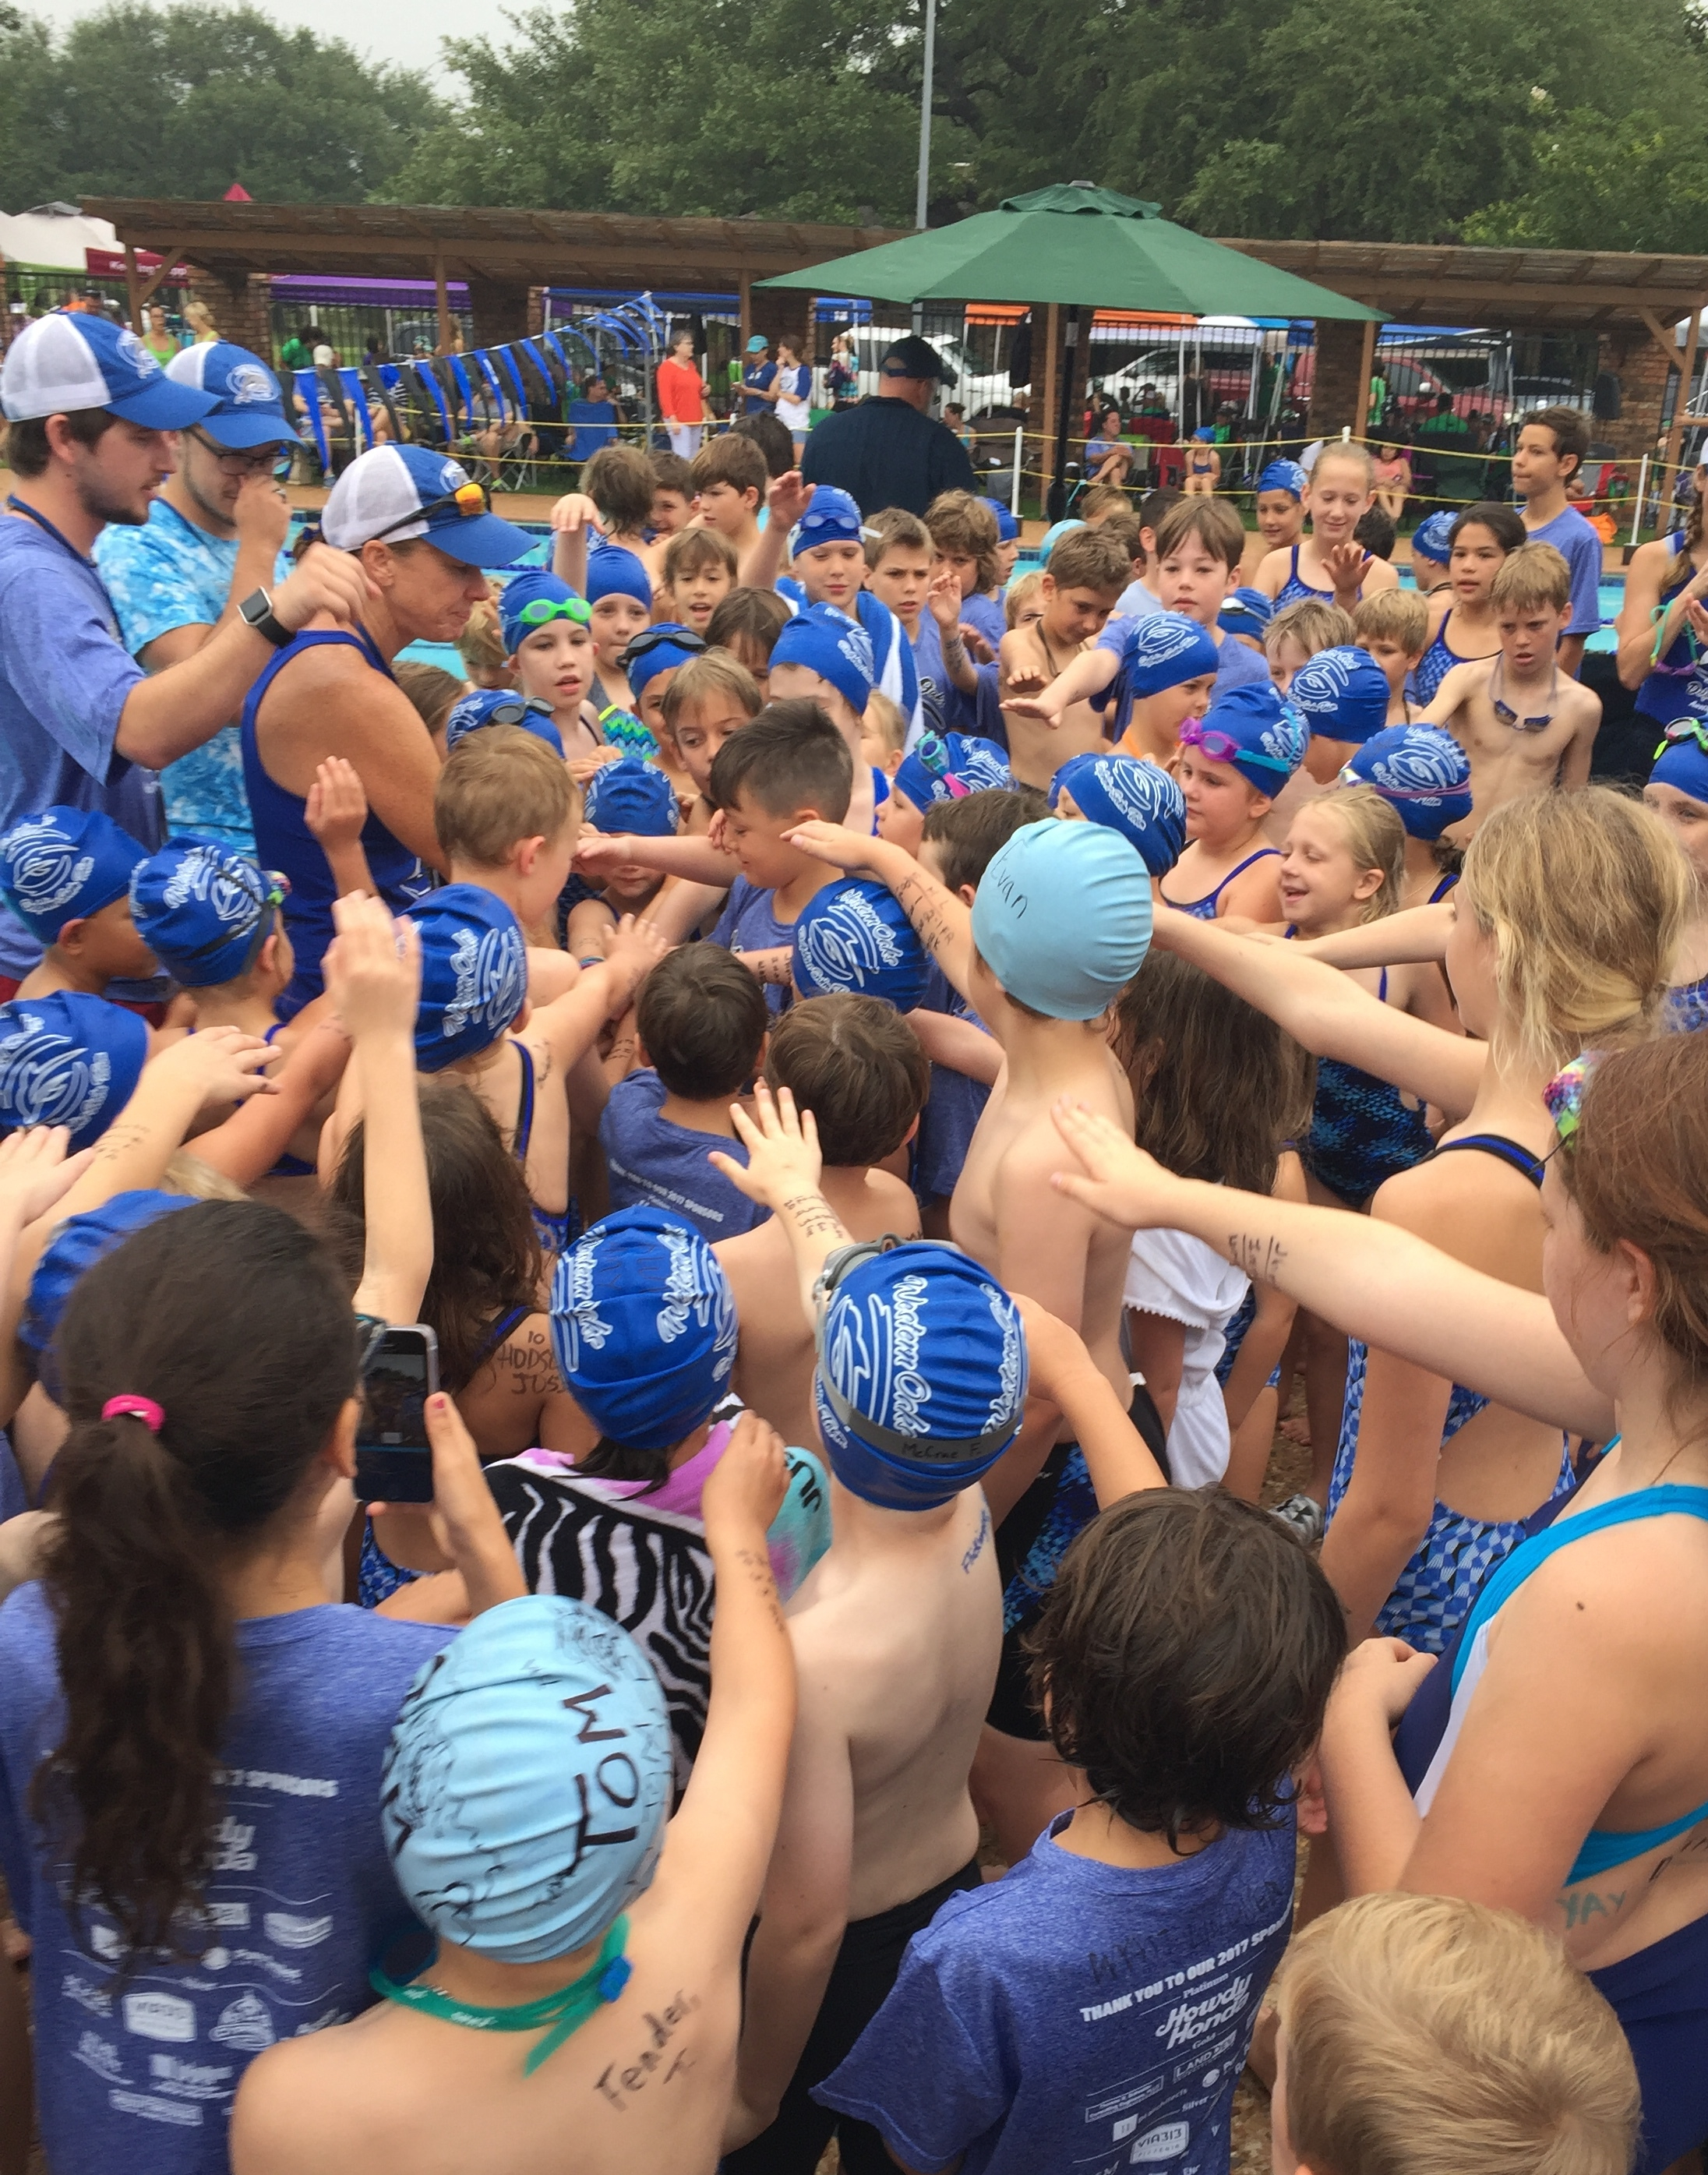 Pi Architects is proud to sponsor the Western Oaks Swim Team in Austin, Texas. Youth swimmers of all ages come together each summer to compete, build friendships, and gain confidence in the water. Most important, they learn important life skills such as teamwork and good sportsmanship.